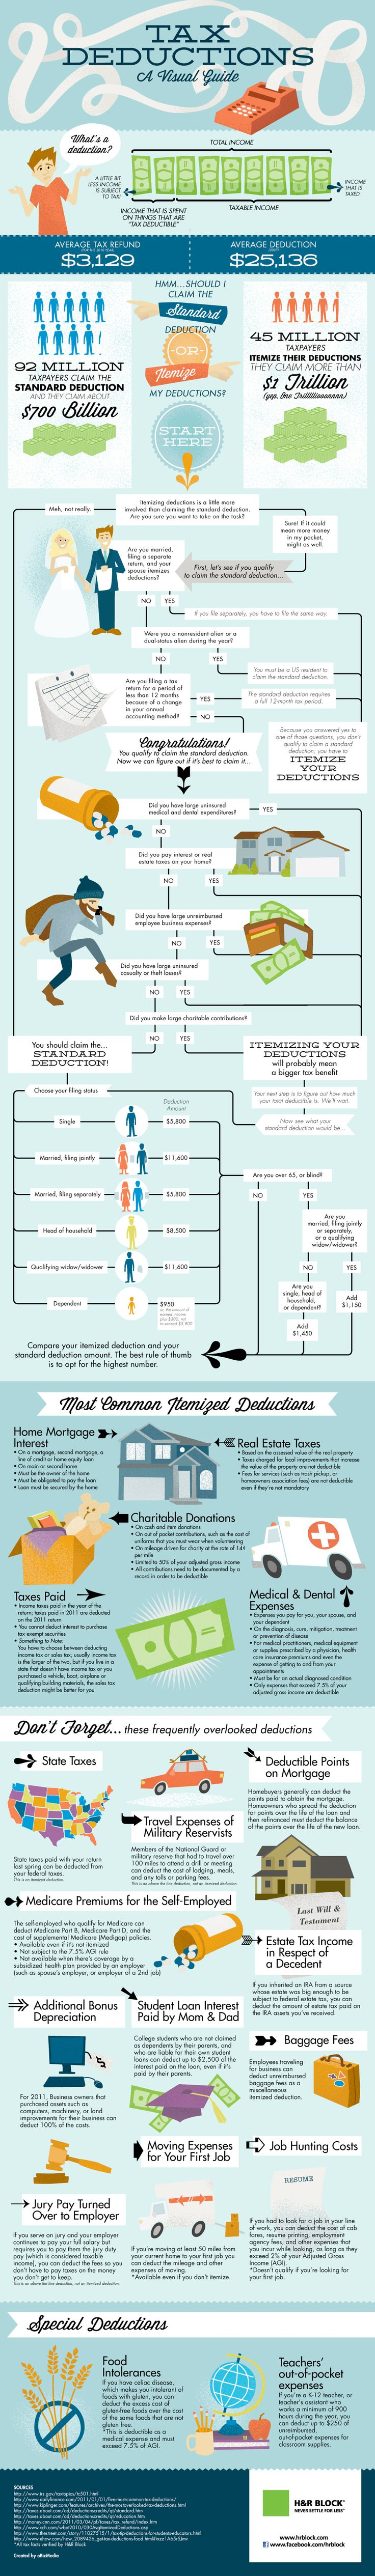 Tax deductions infographic